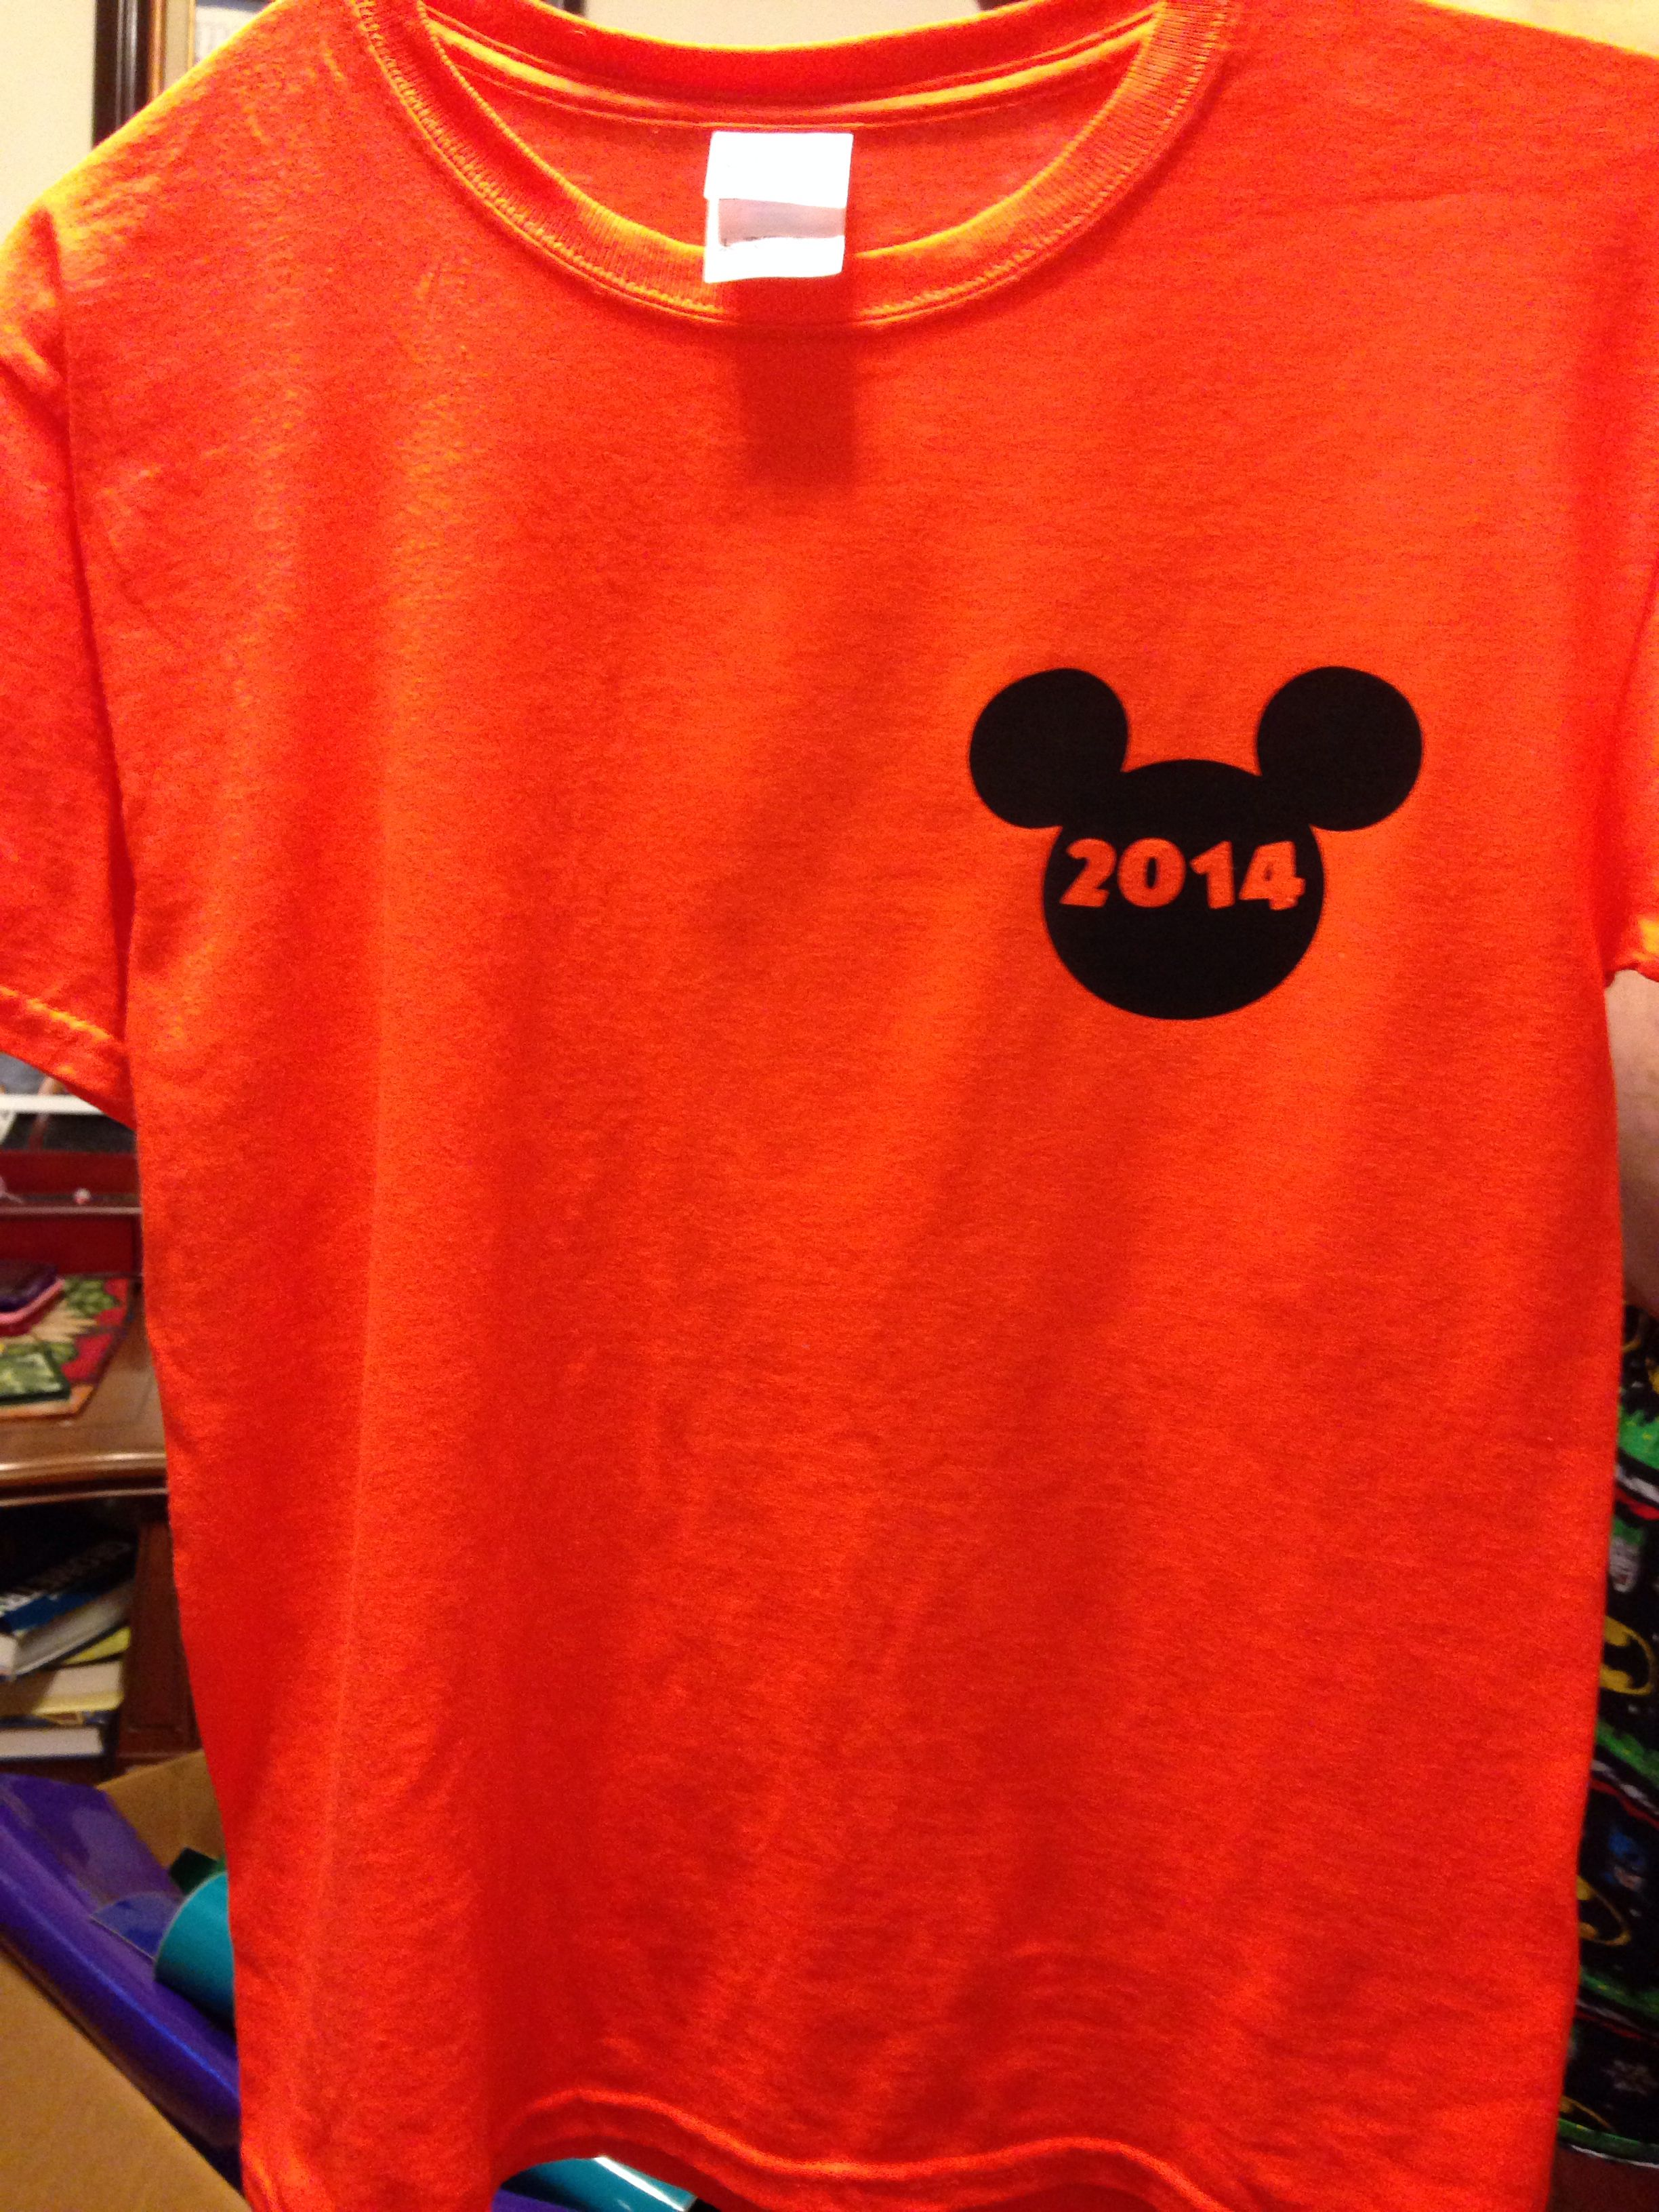 Diy Disney Shirt Using Cricut Cricut Pinterest Disney Shirts